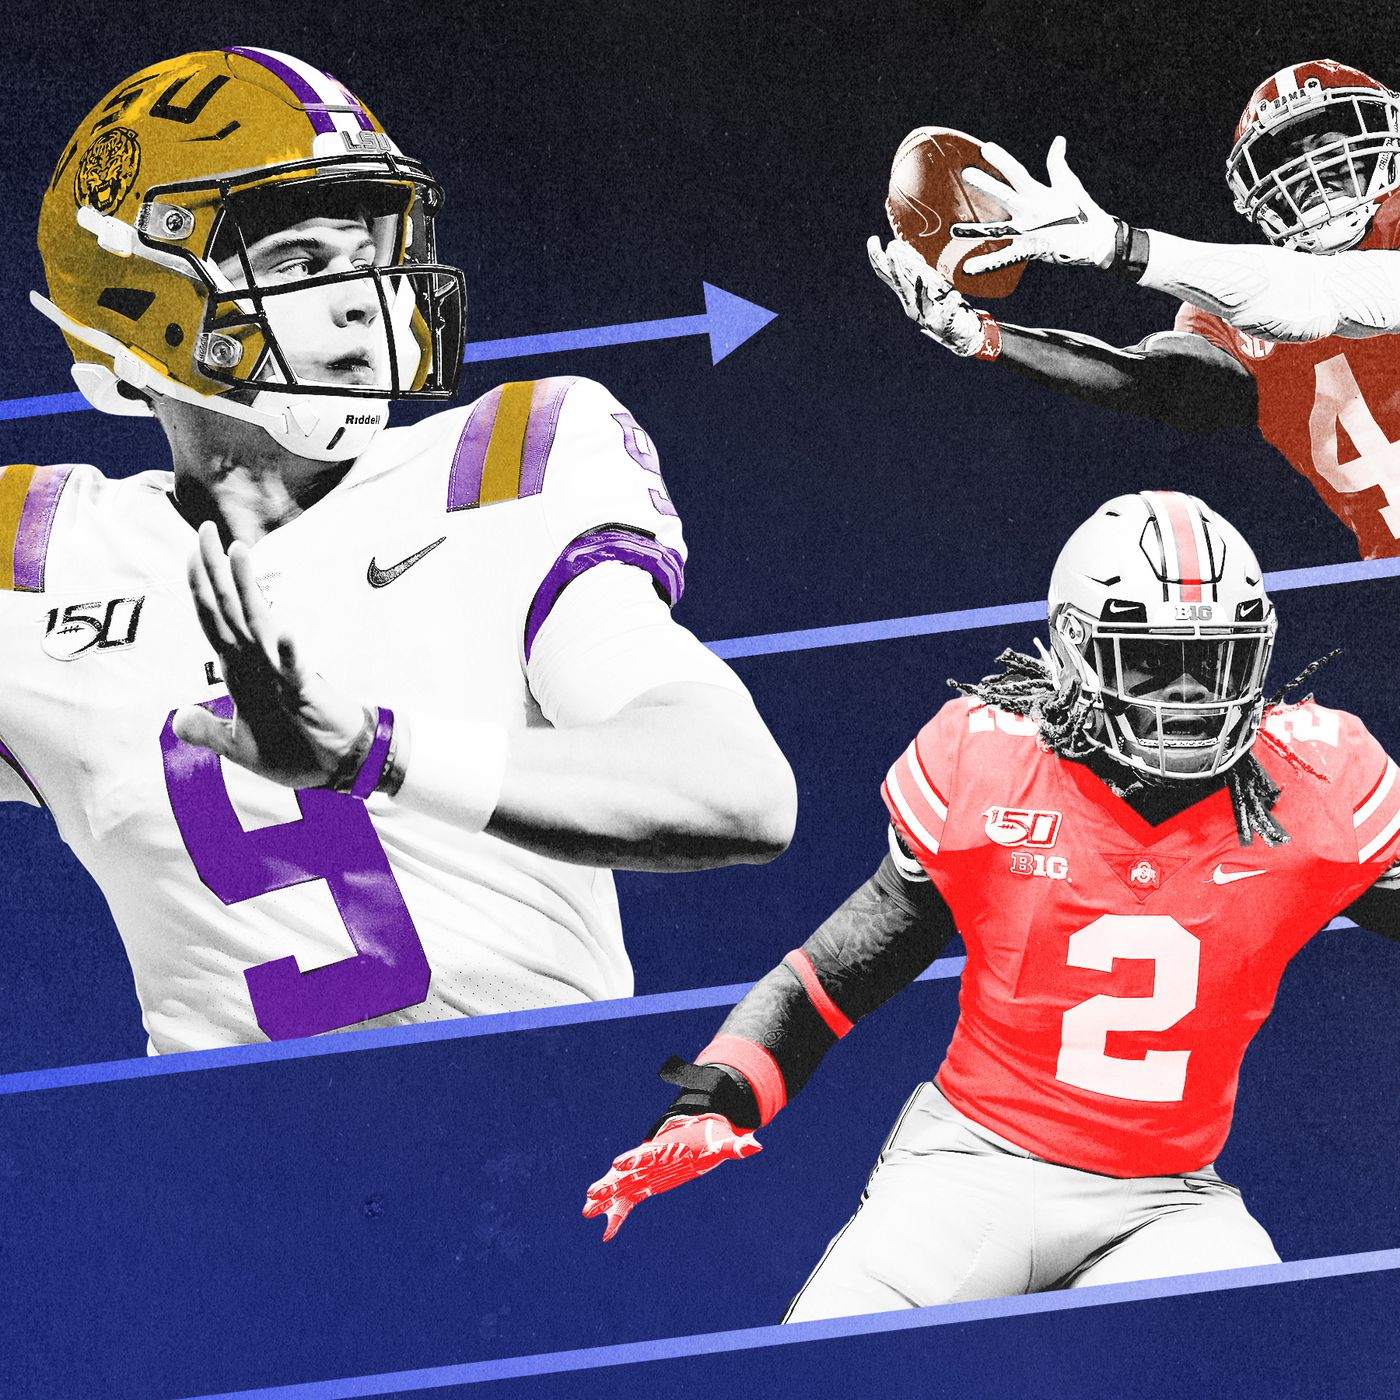 Nfl Mock Draft Joe Burrow Already Feels Set At No 1 Who Goes Next The Ringer Personally, i was team burrow, but haskins took advantage of burrow getting injured by playing great in relief for jt in the game. nfl mock draft joe burrow already